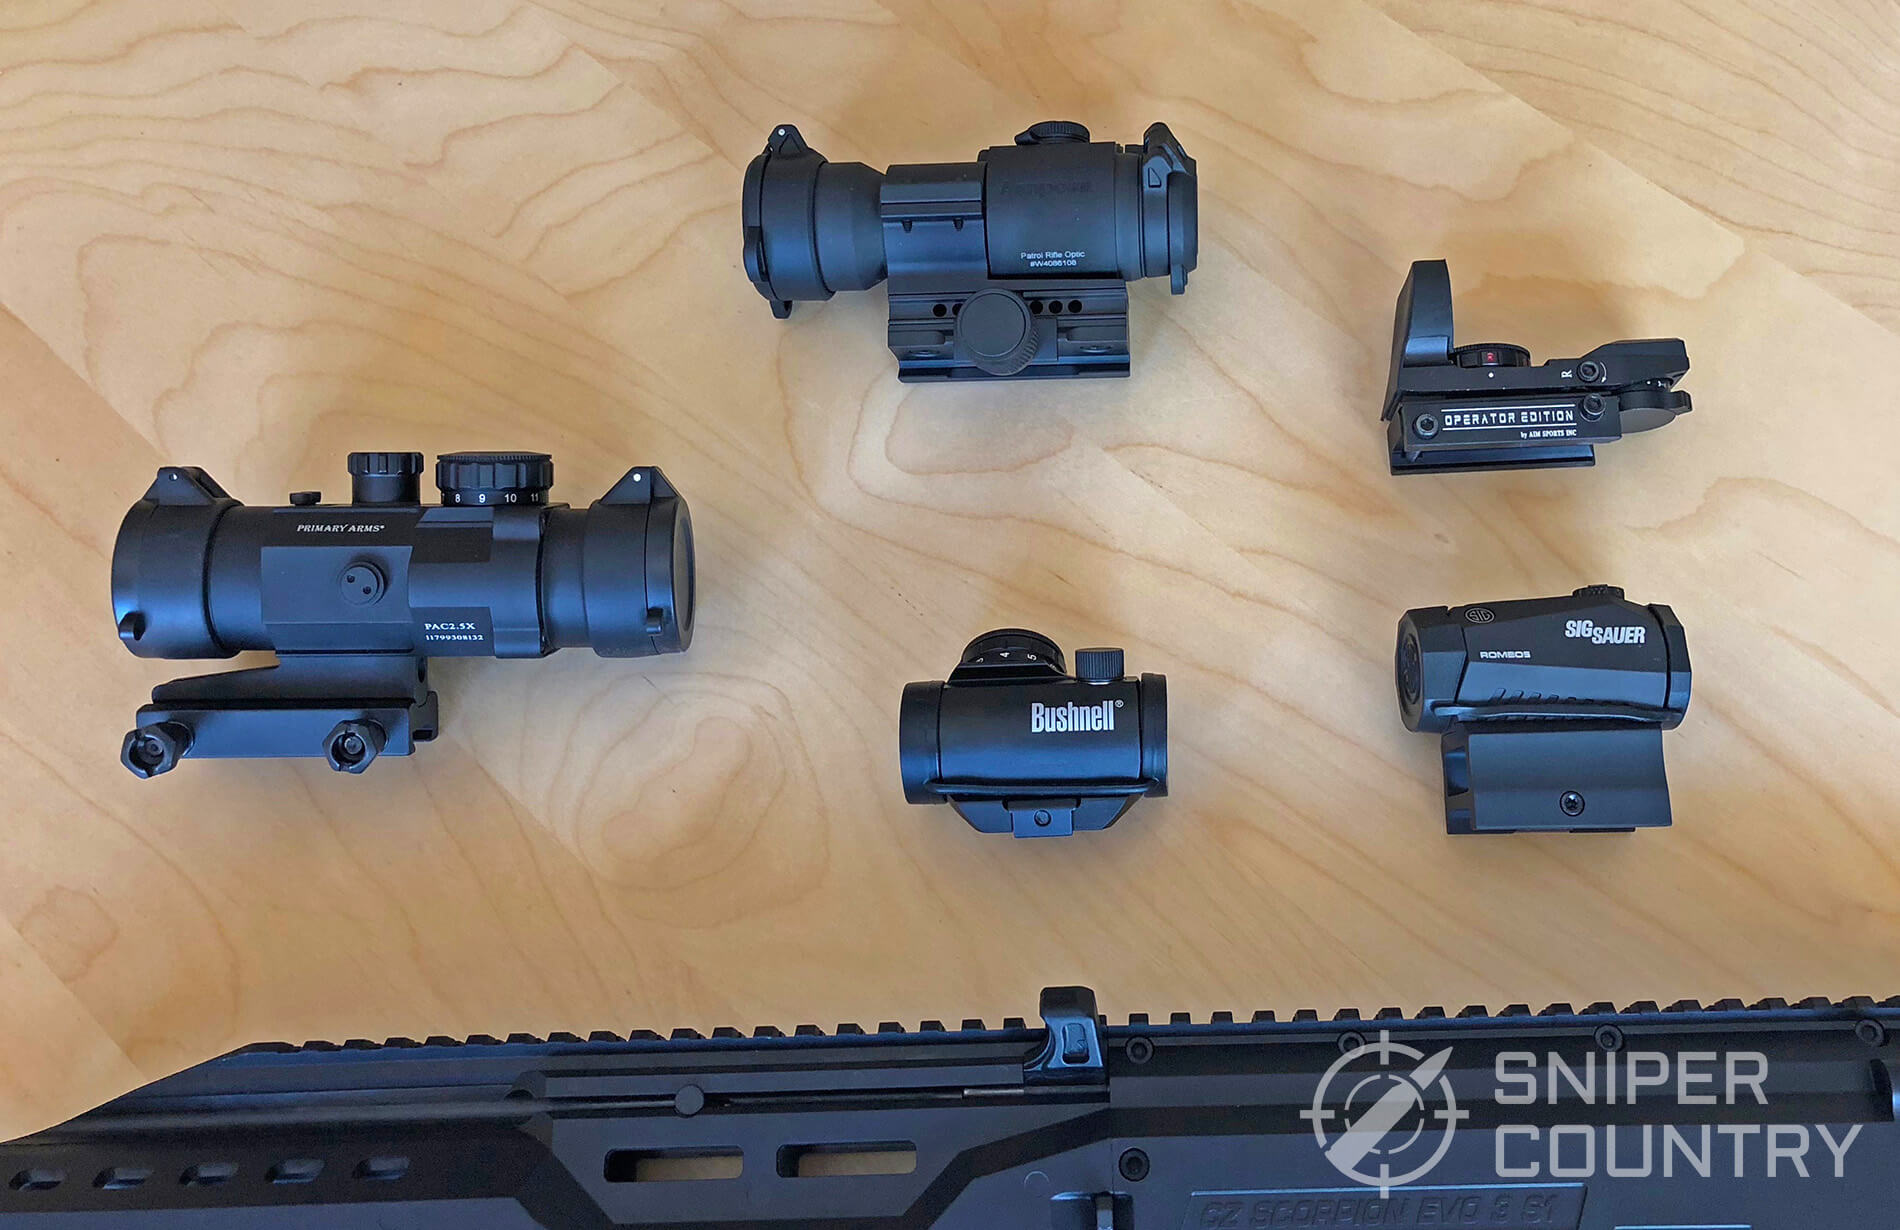 Selection of red dot sights and 9mm carbine